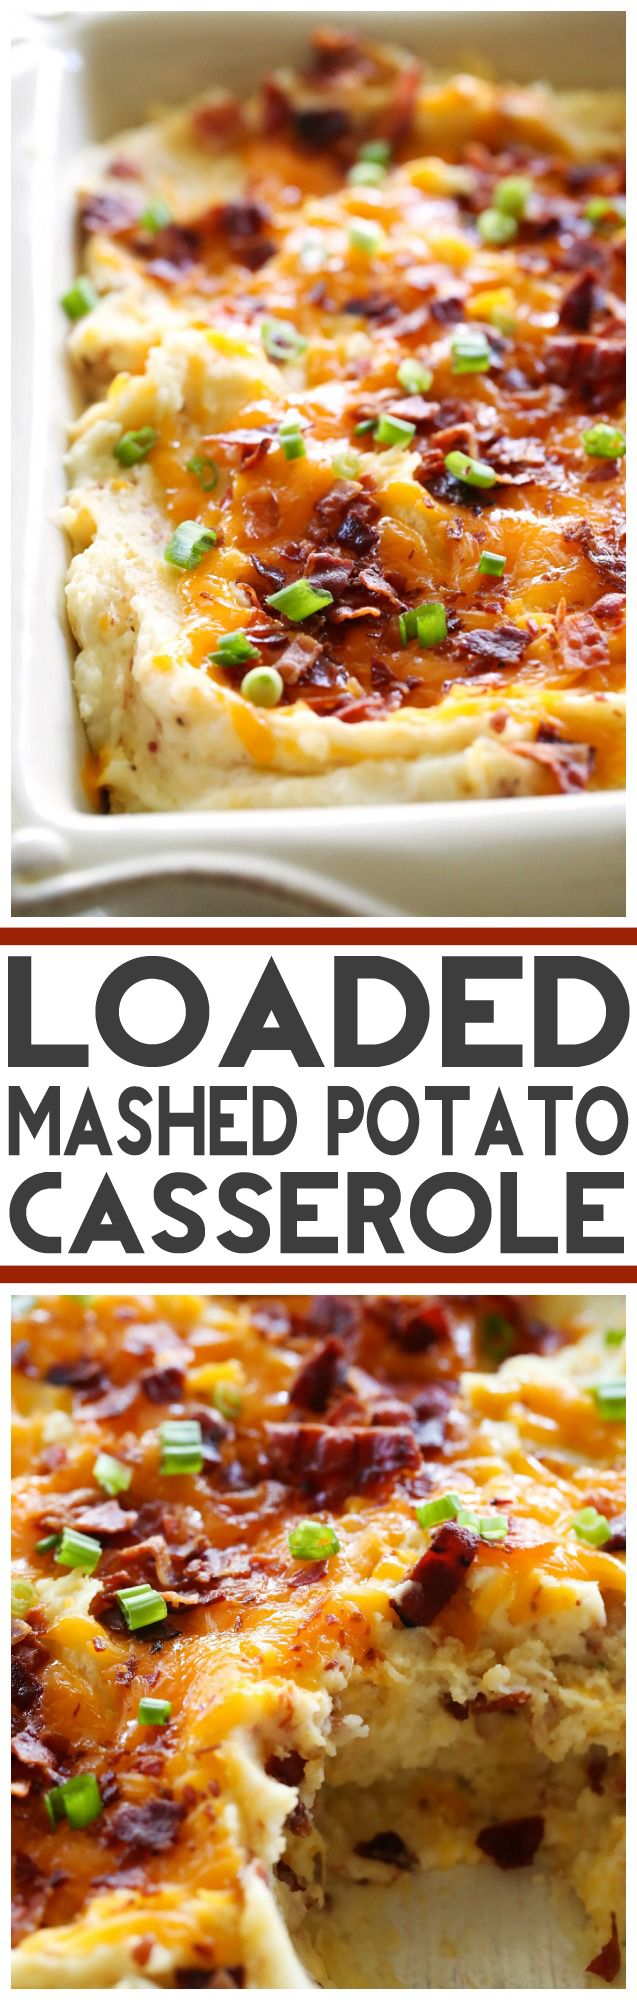 手机壳定制high heel shoe cupcake picks Loaded Mashed Potato Casserole  This recipe takes mashed potatoes to a whole new delicious level These potatoes will be the star of the dinner table They are my new favorite potato recipe